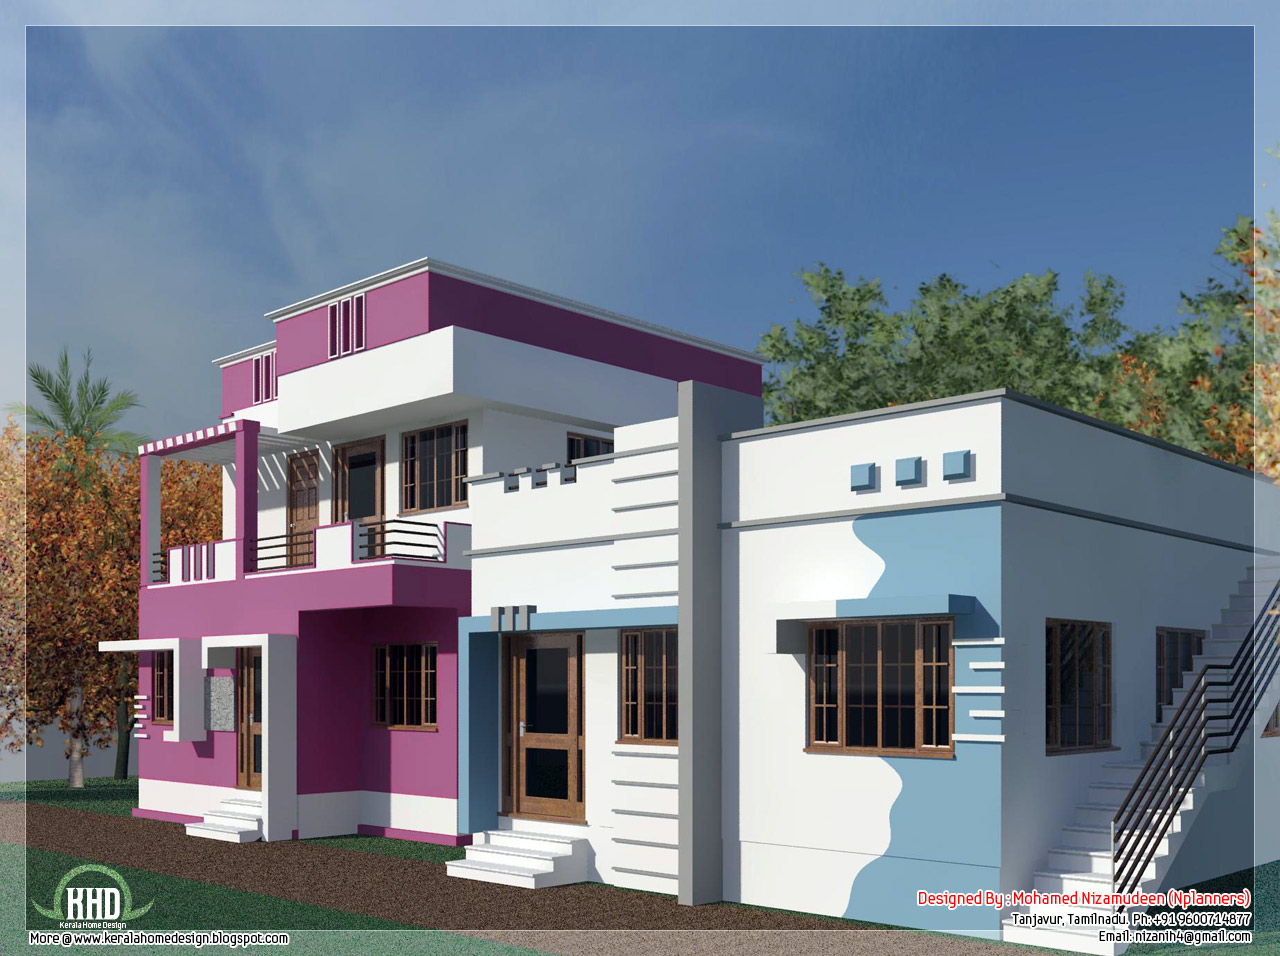 Tamilnadu model home desgin in 3000 a taste in for Tamilnadu home design photos